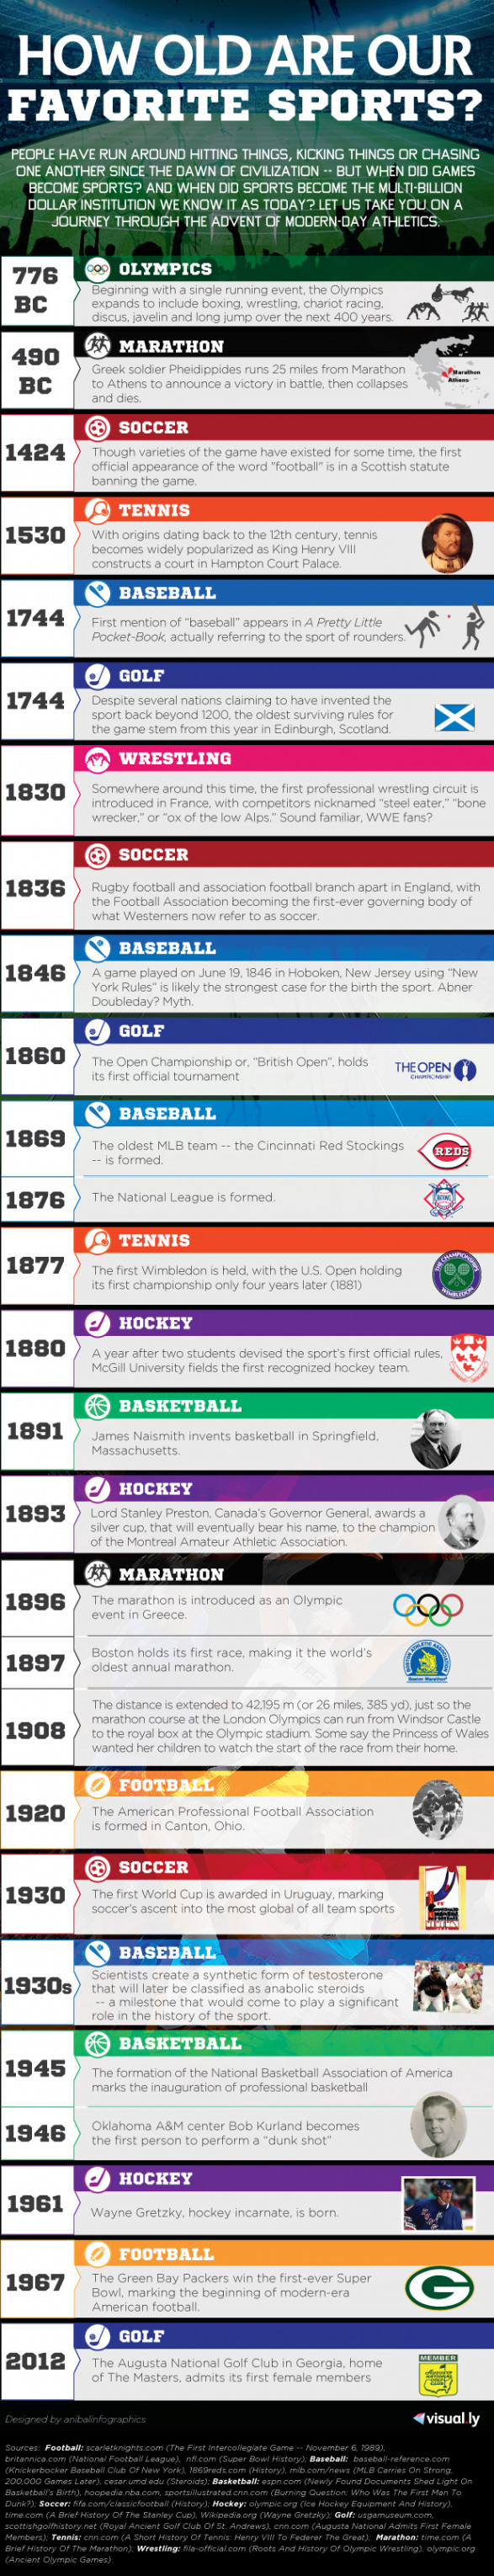 How old are our favorite sports?